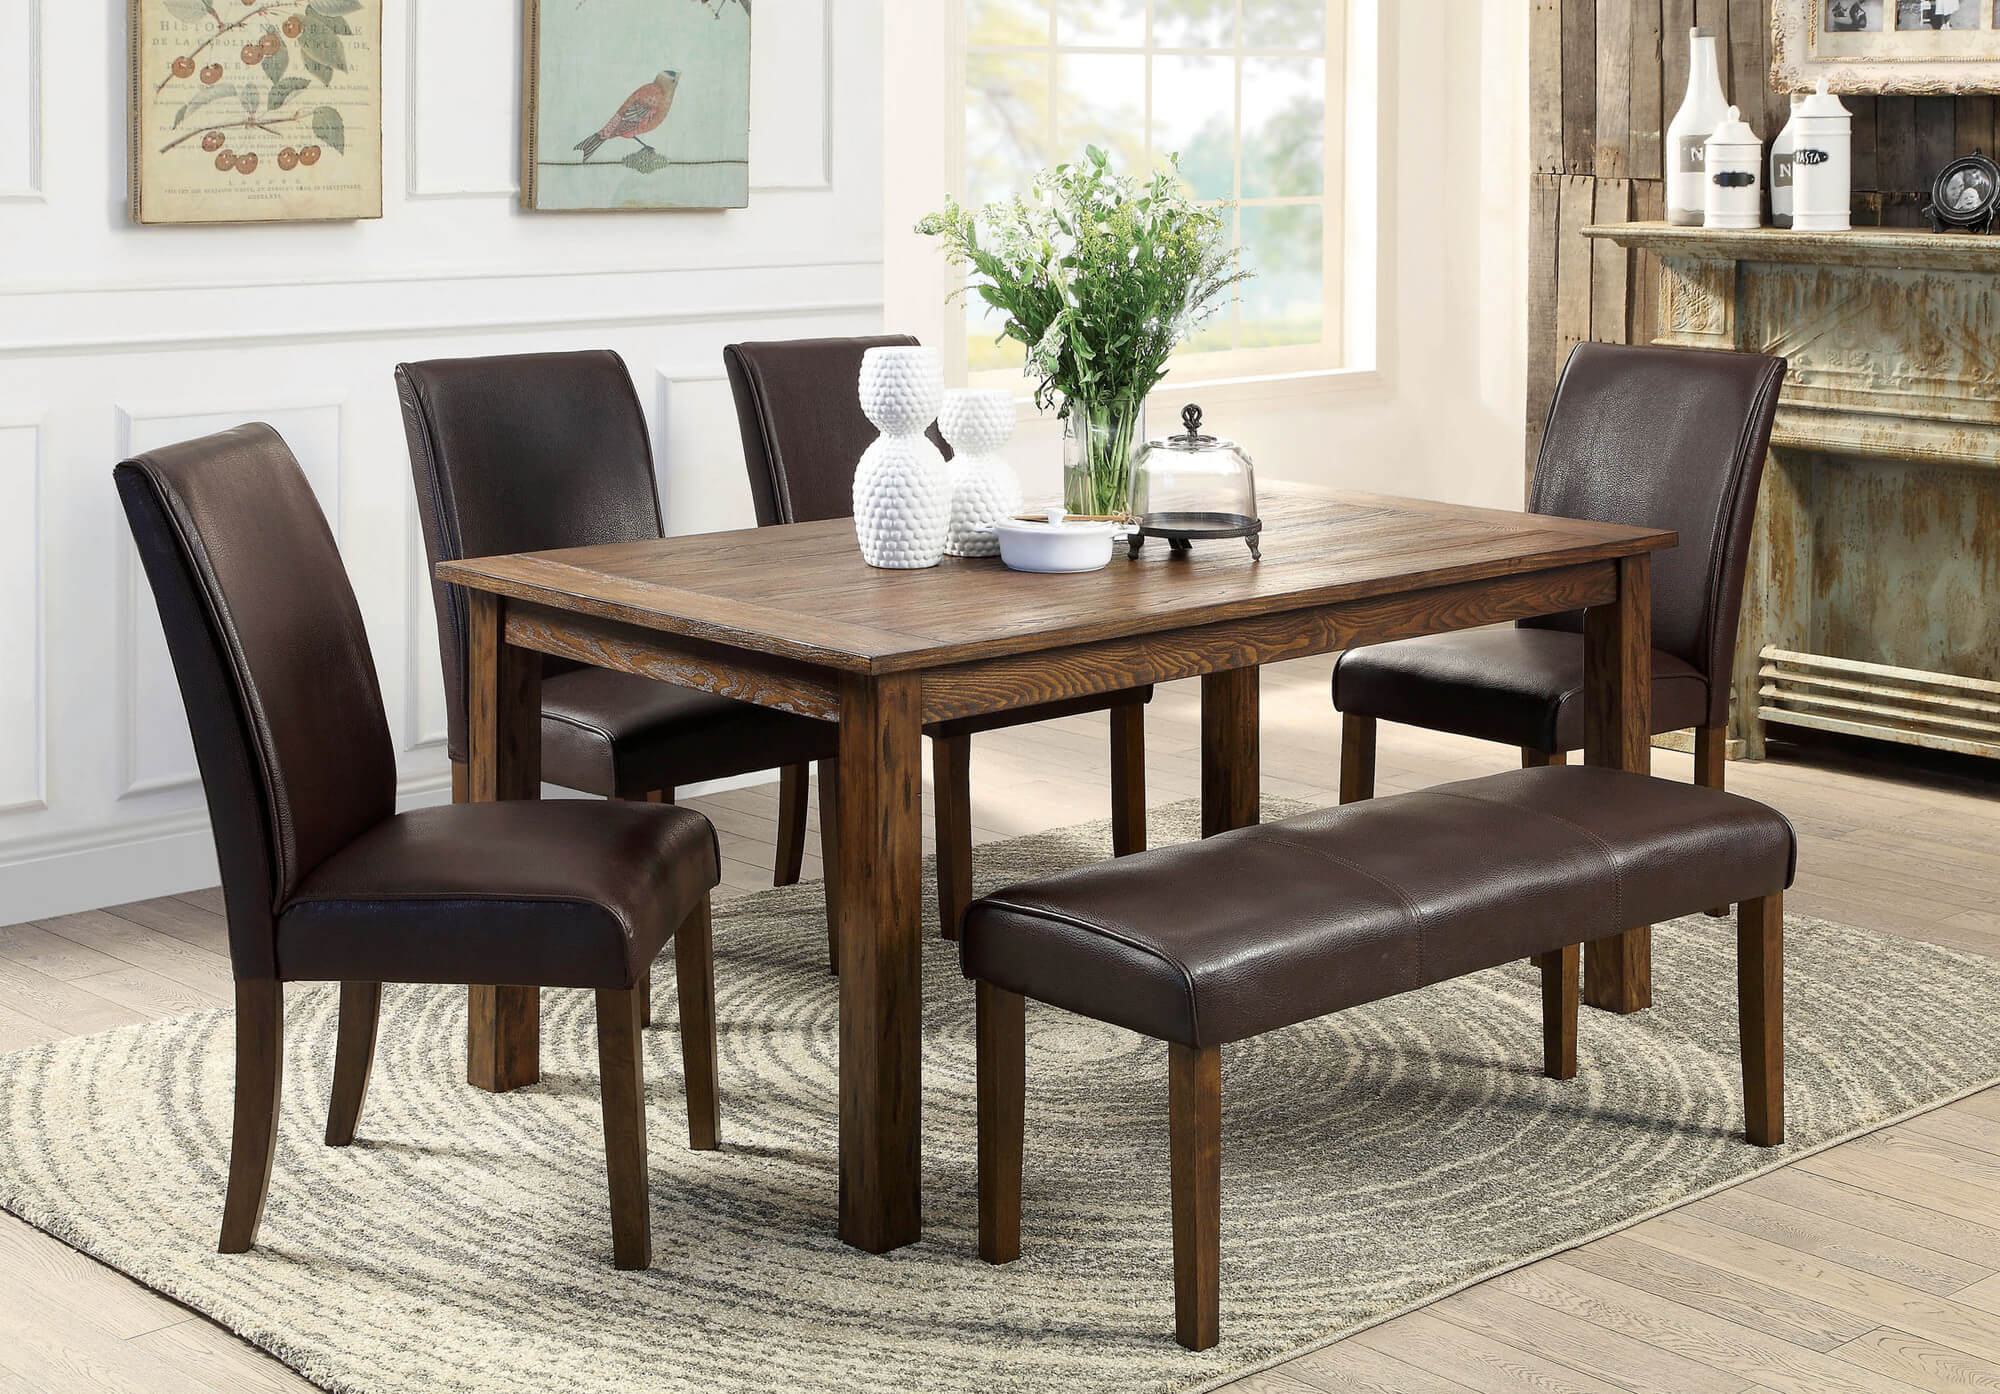 Dining room sets big and small with bench seating